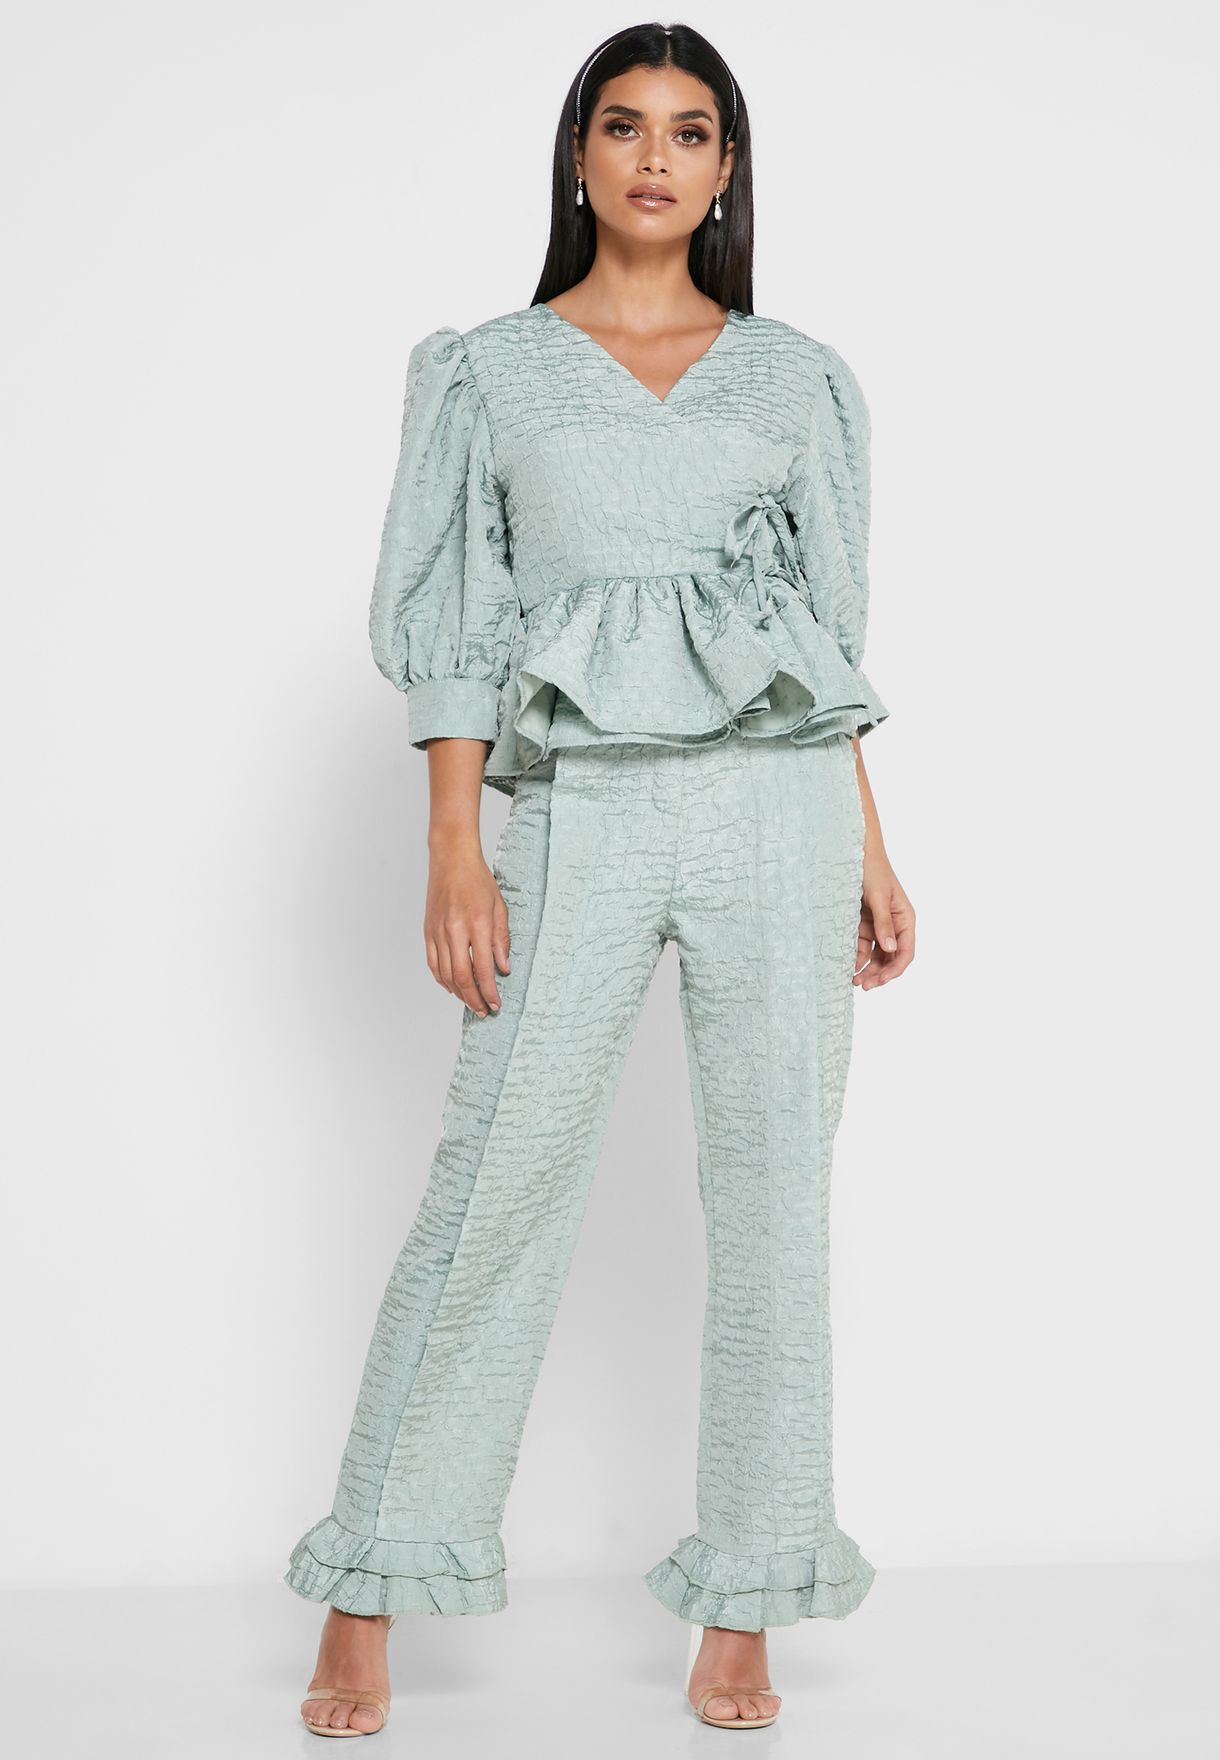 High Waist Ruffle Detail Pants